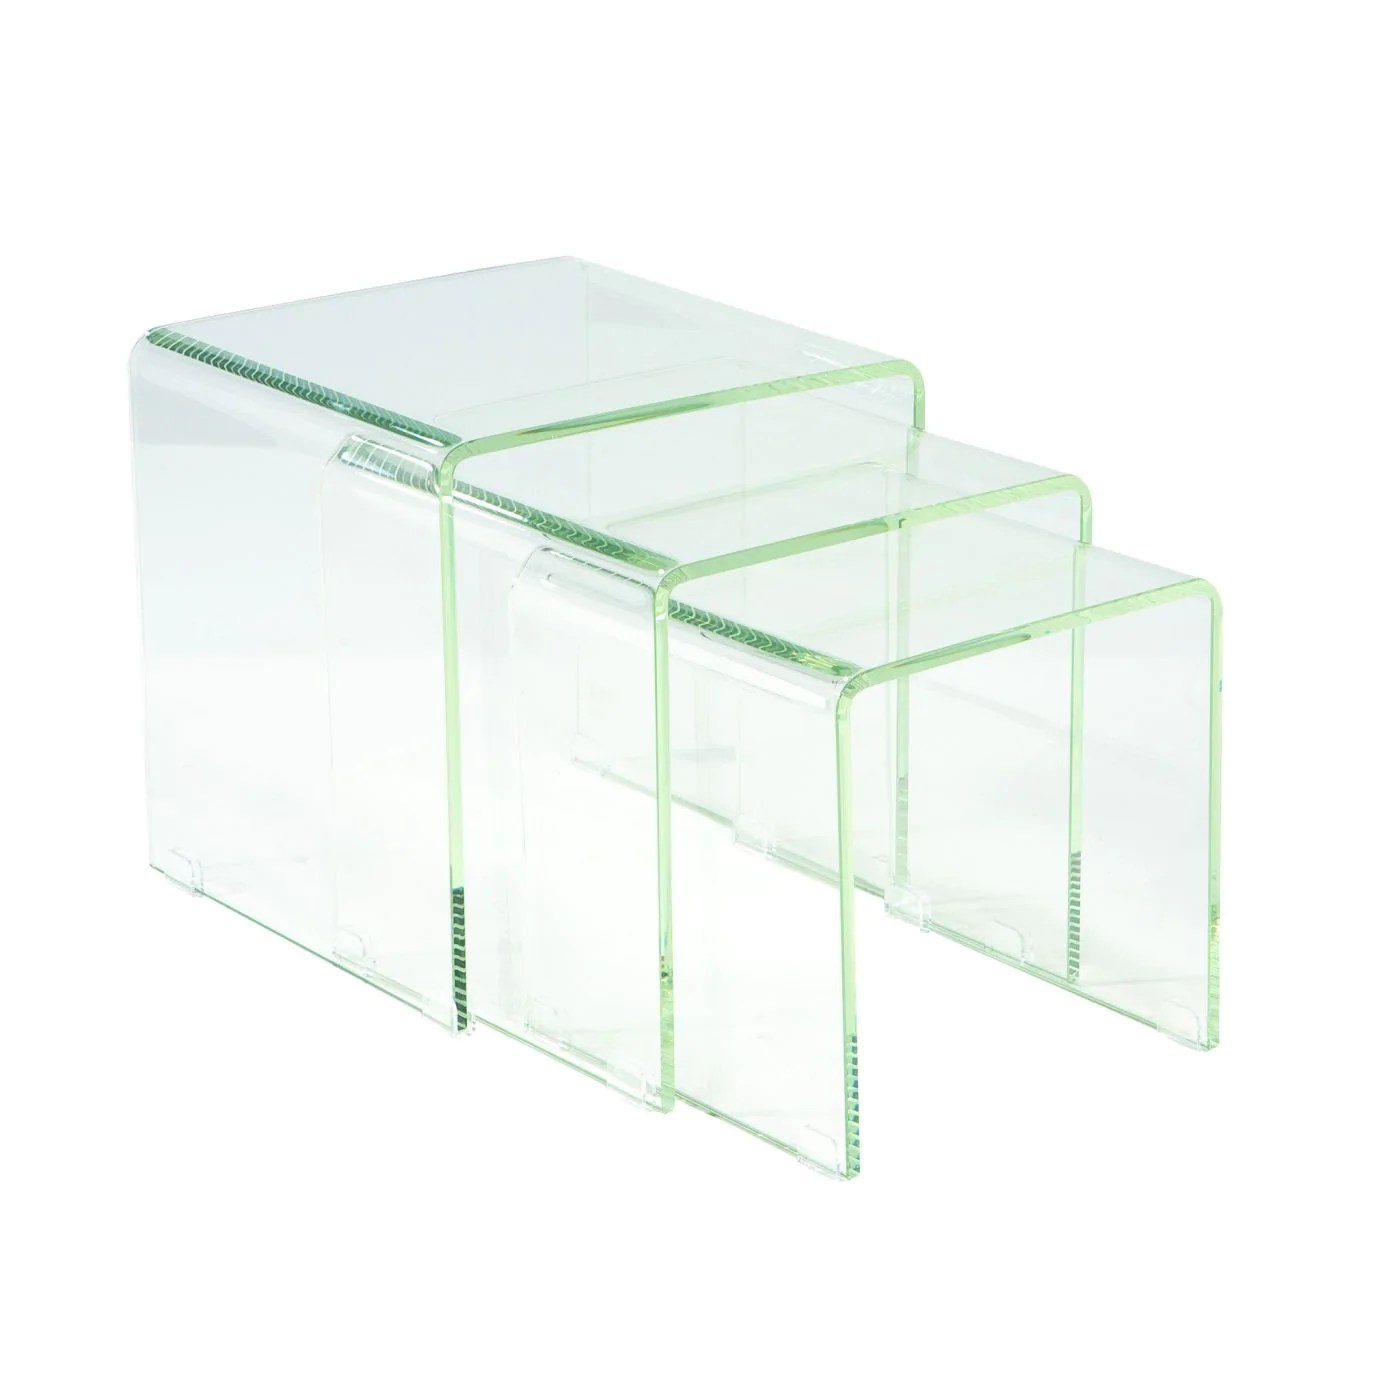 Glass Nesting Tables Moes Home Collection Covo Tables Set Of 3 Glass Glass Hi 1007 17 Only 515 00 At Contemporary Furniture Warehouse